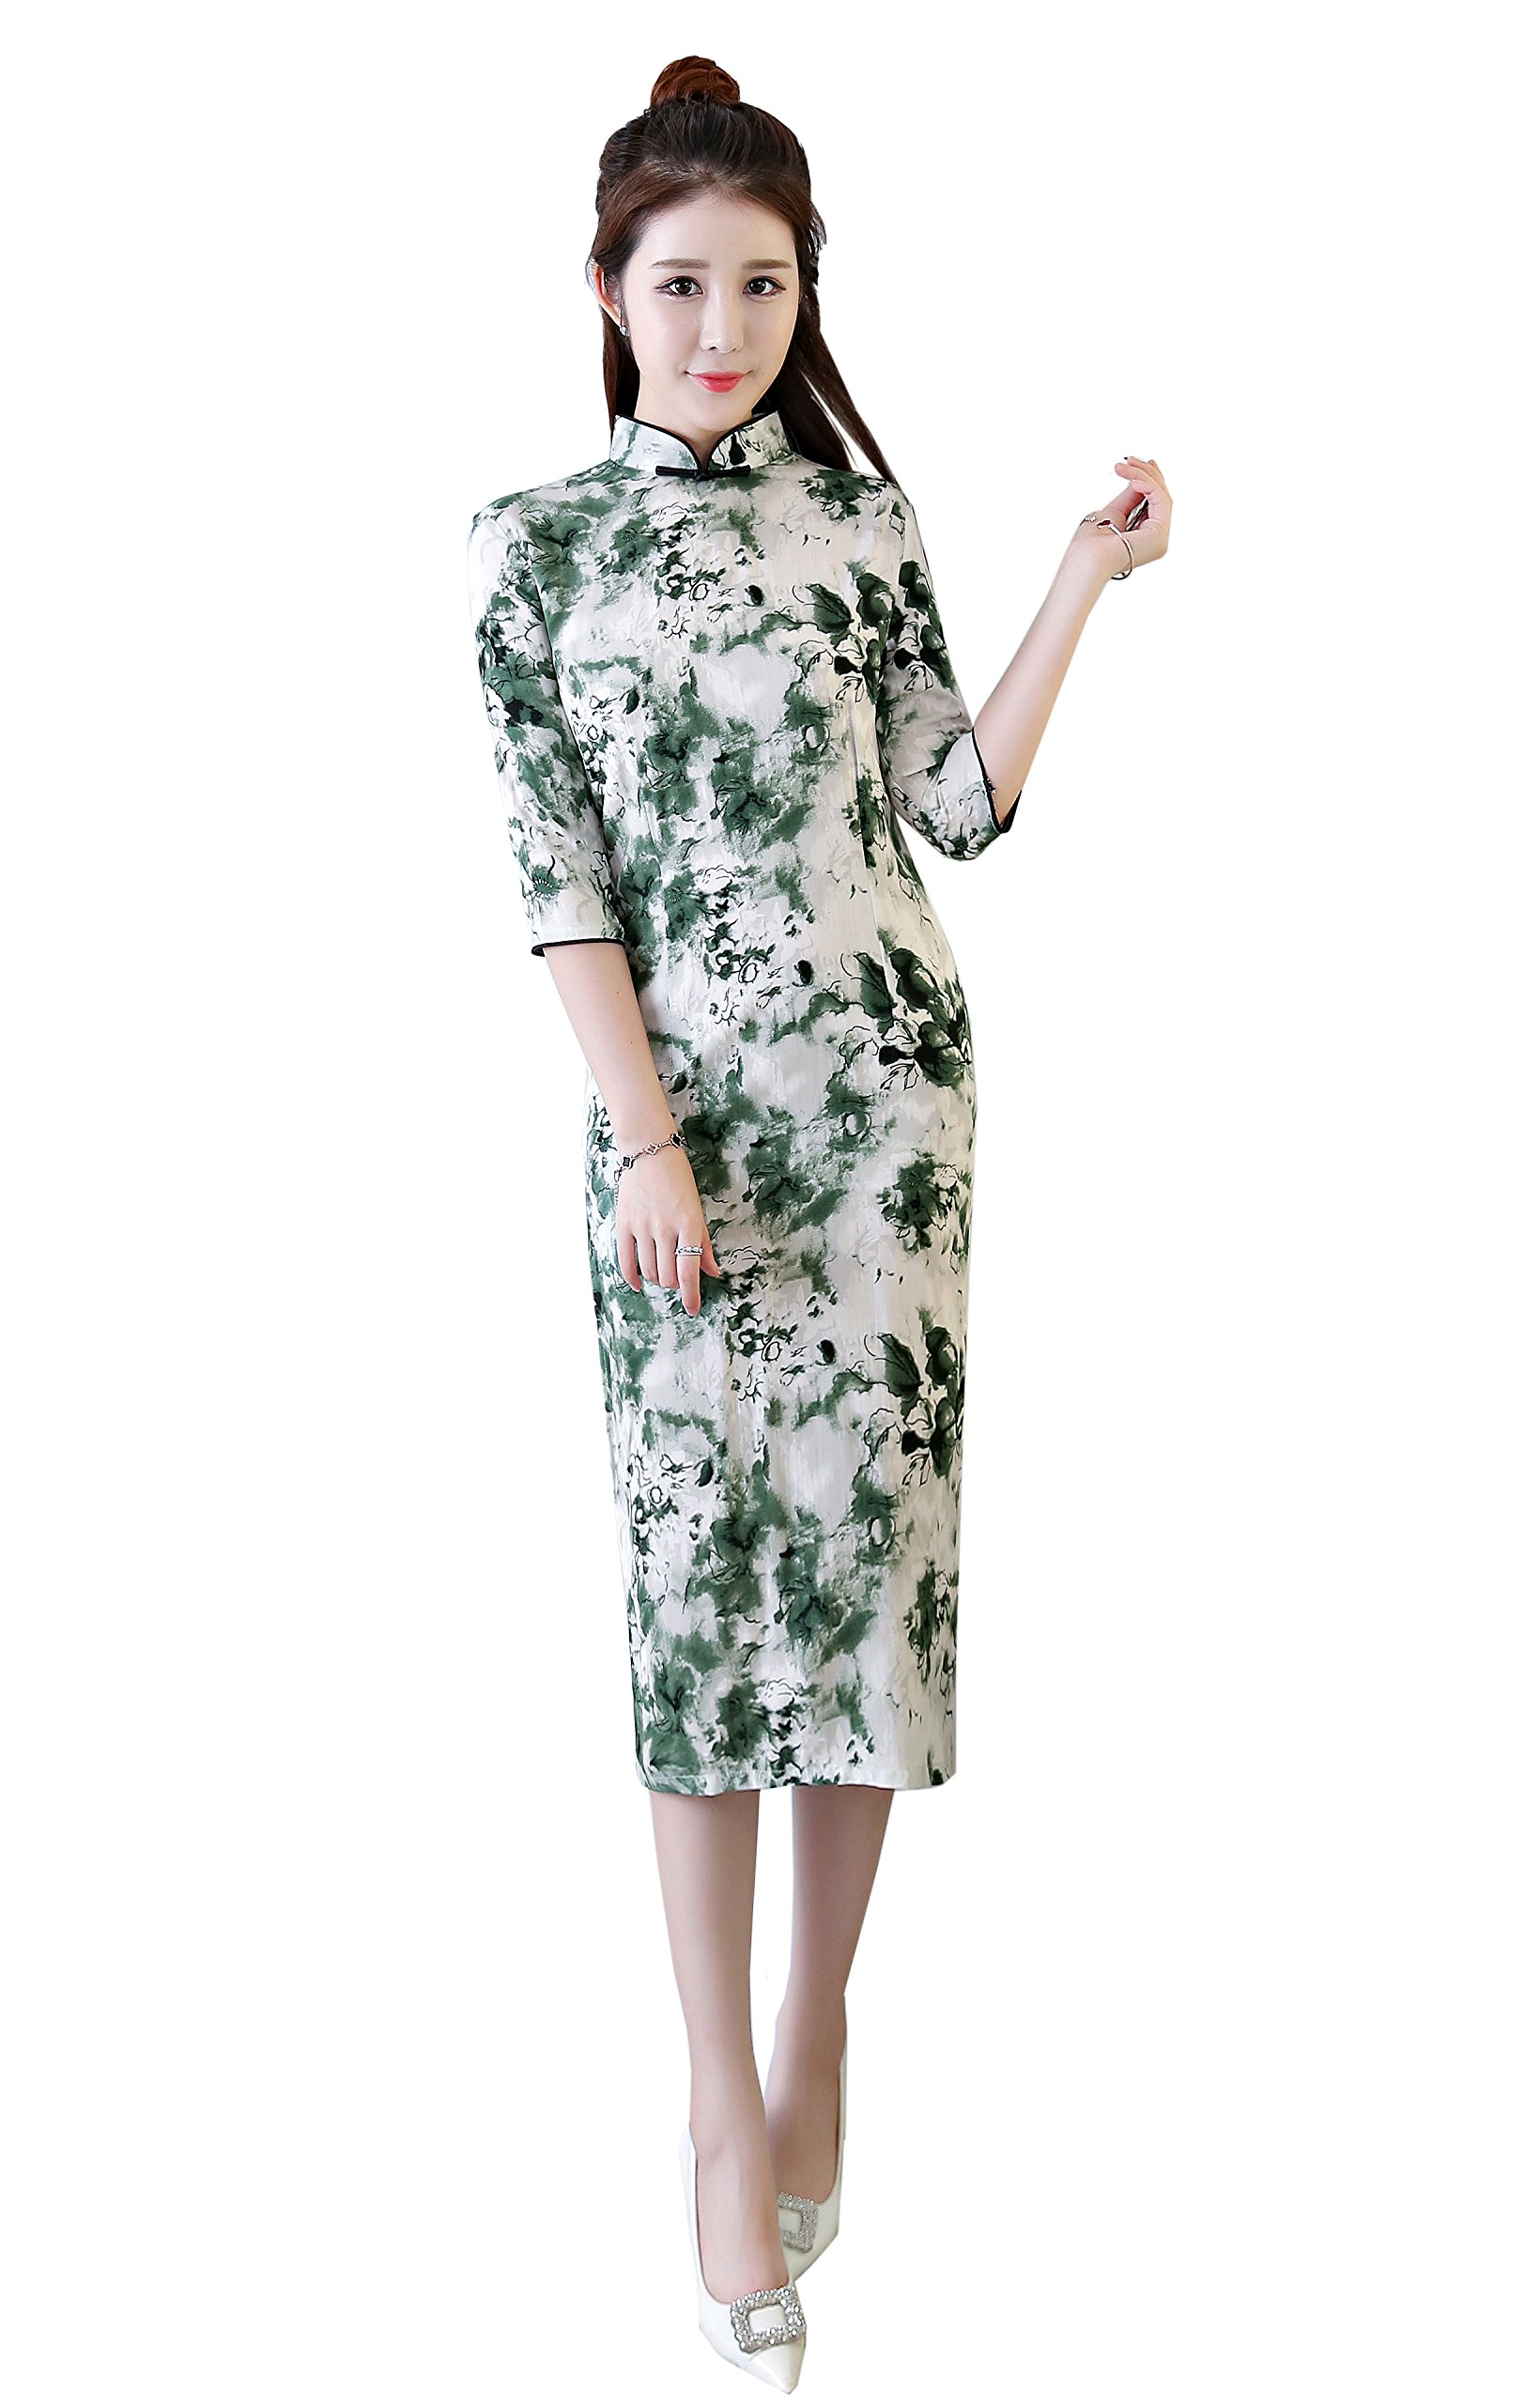 ACVIP Womens Flower Print Cotton Polyester Half Sleeve Chinese Cheongsam Qipao Party Dress (US 10/12(China 3XL), Green Flower)